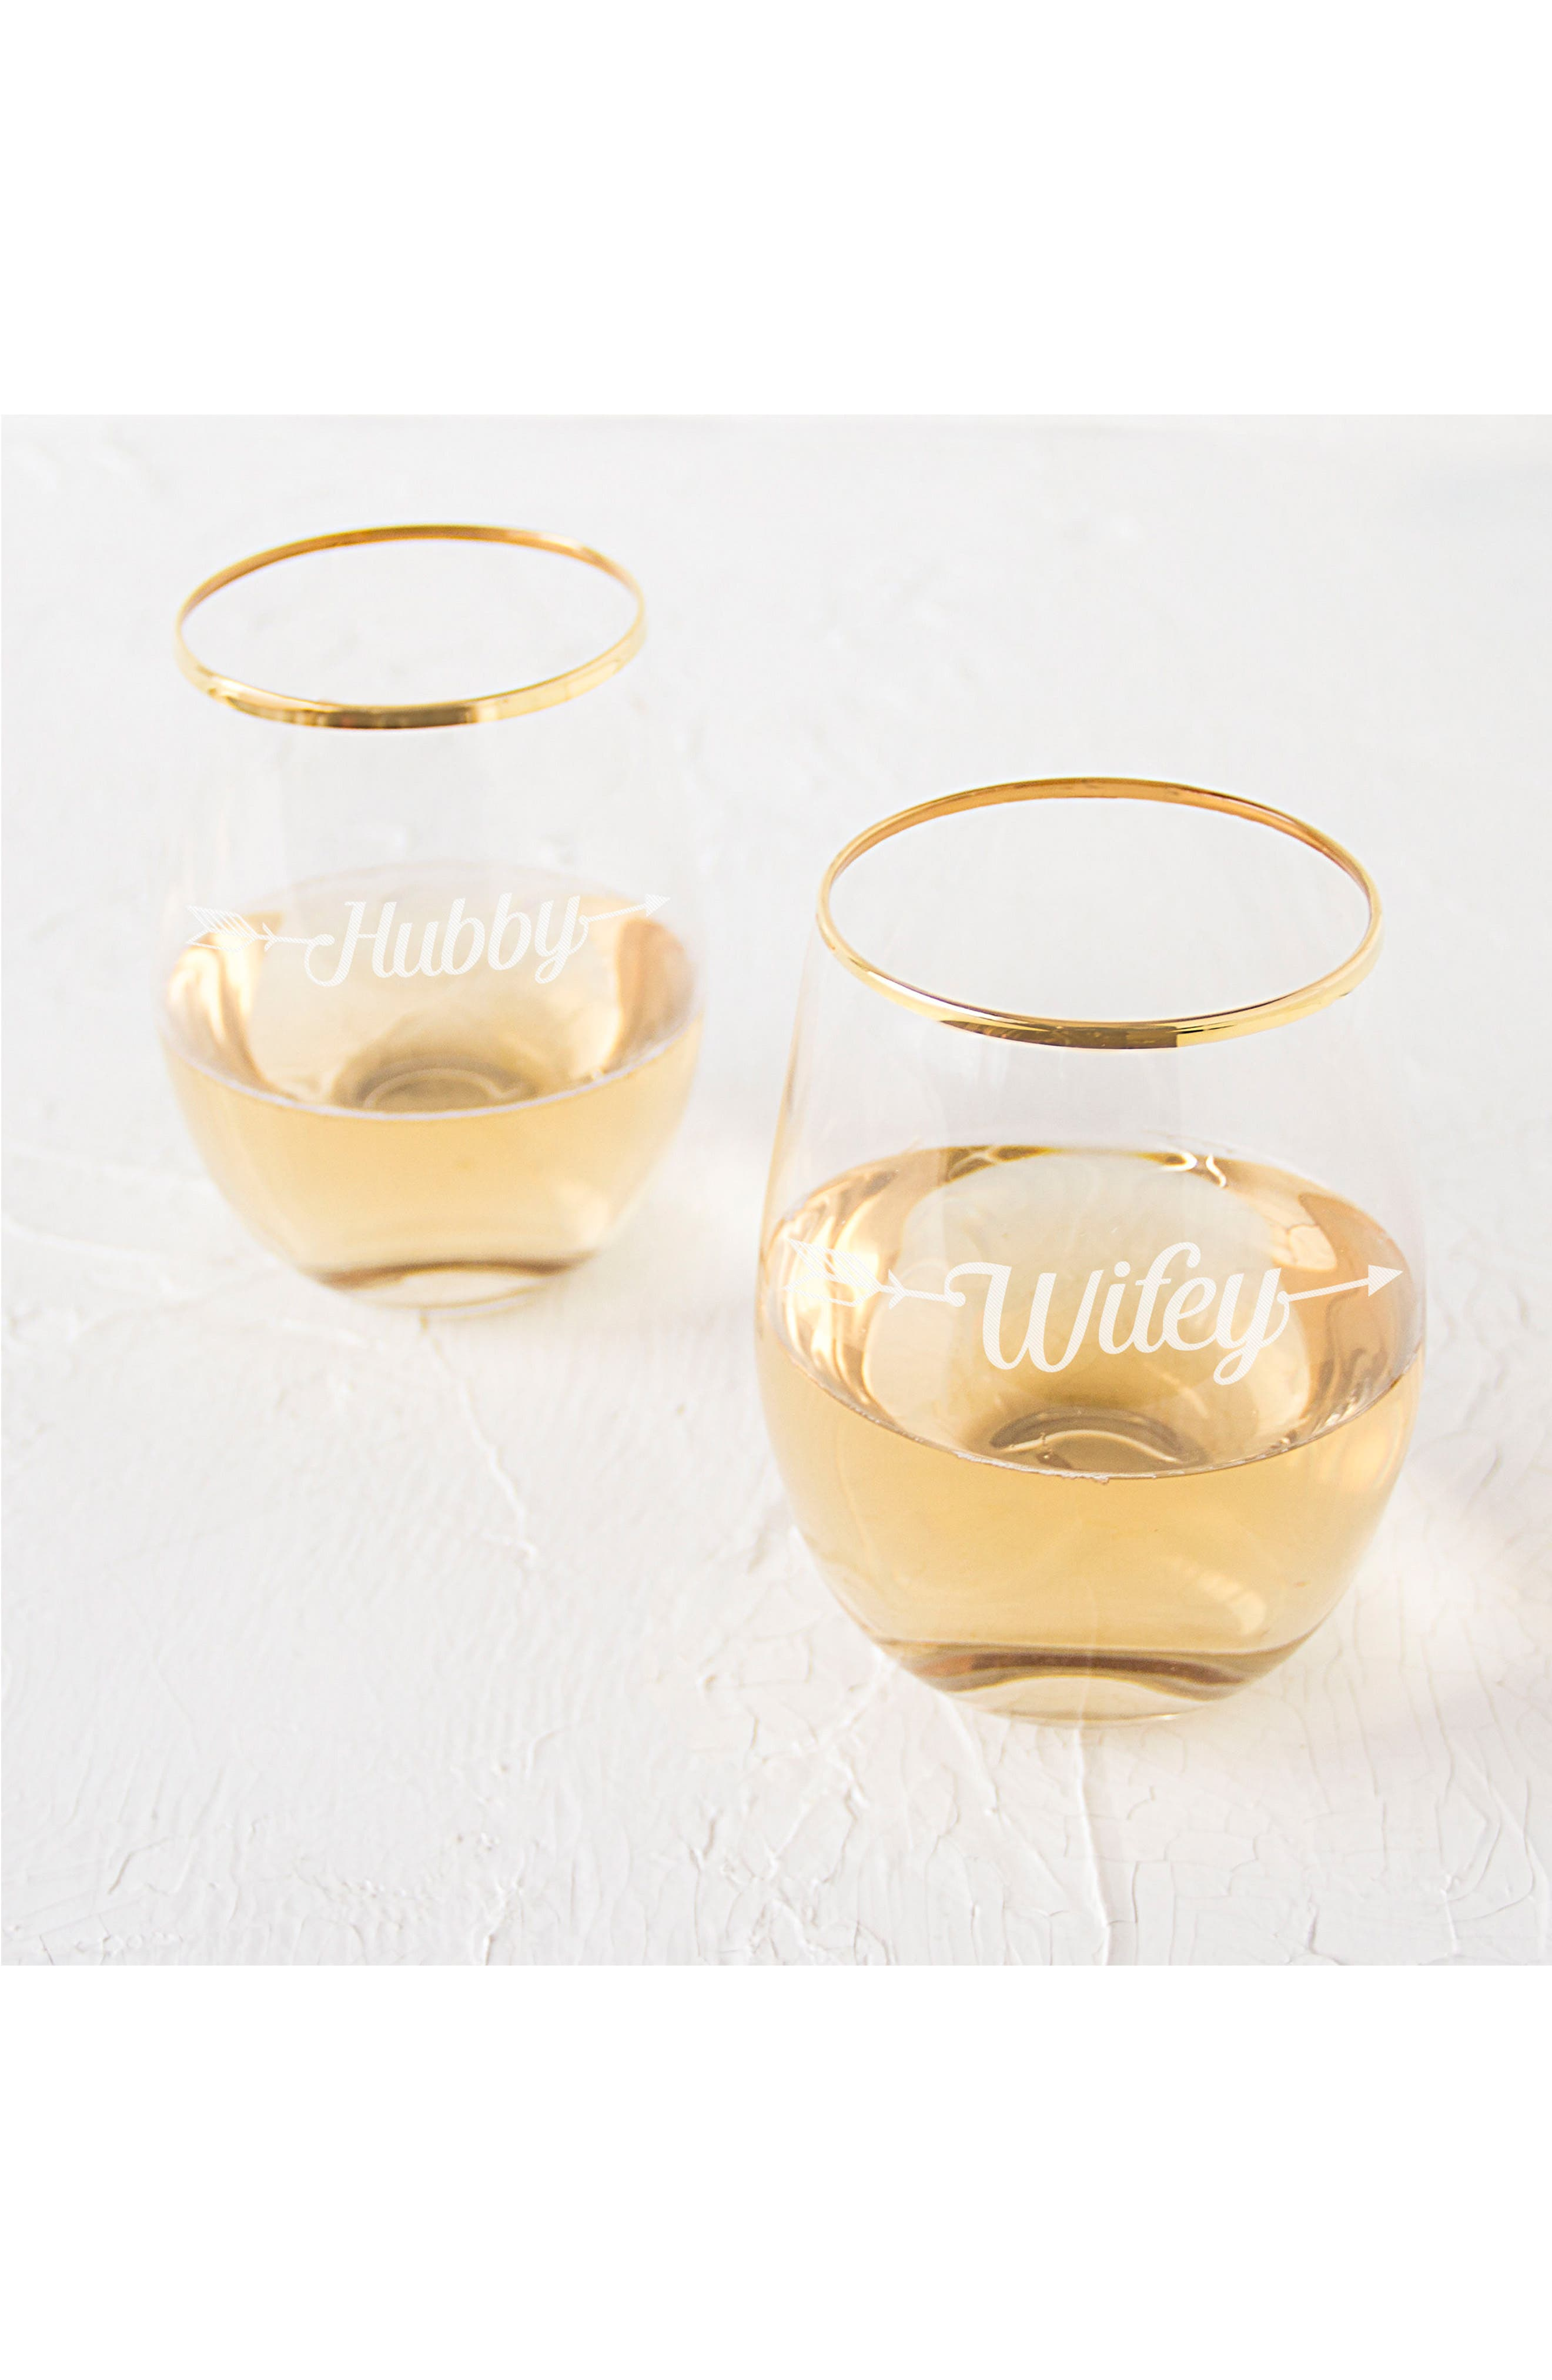 Alternate Image 3  - Cathy's Concepts Hubby/Wifey Set of 2 Gold Rimmed Stemless Wine Glasses